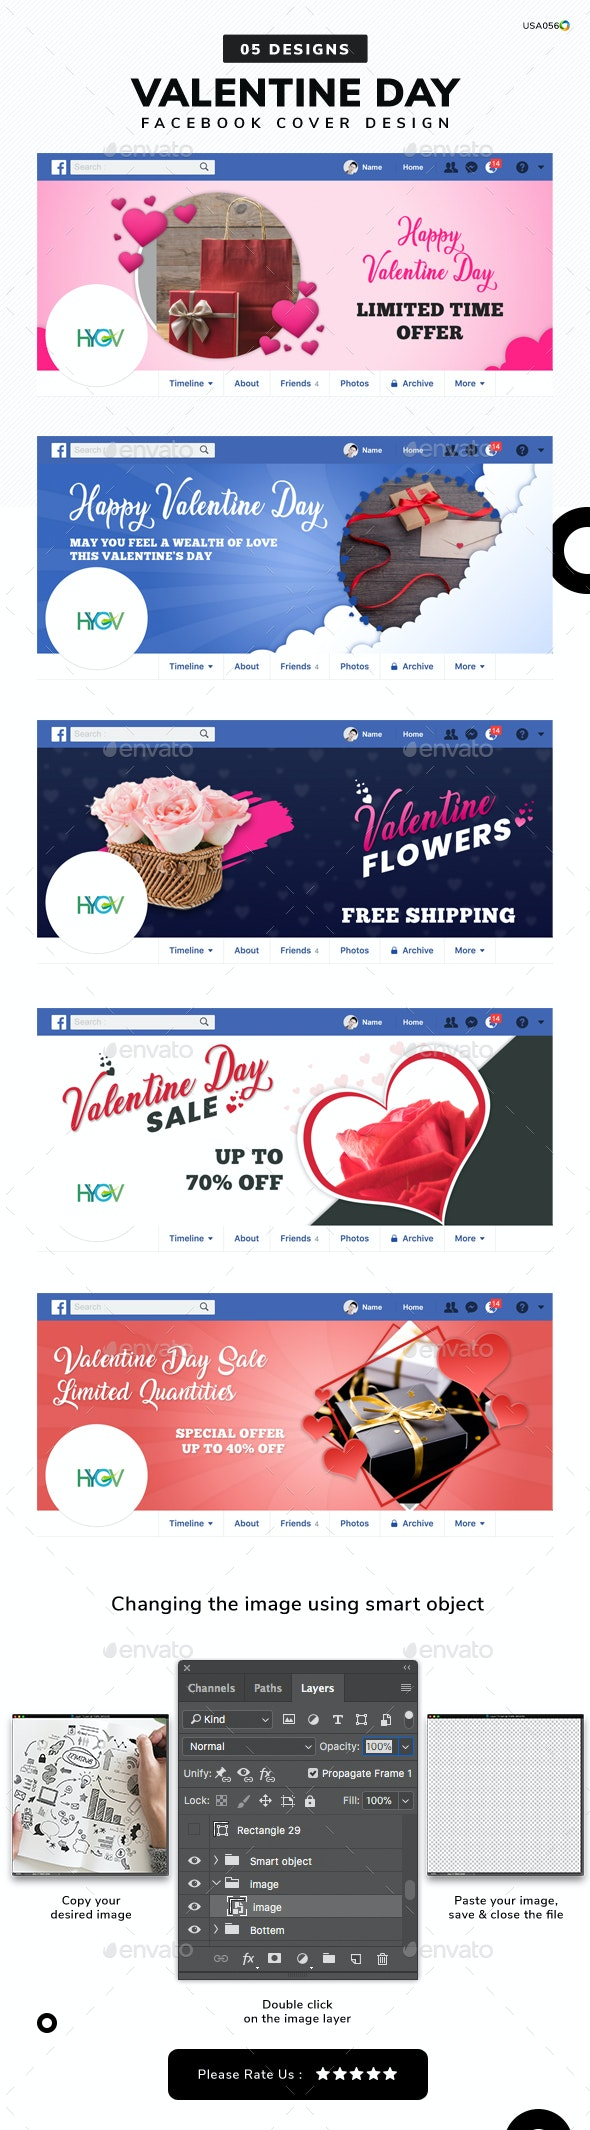 Valentine's Day Facebook Cover Templates - 05 Designs - Facebook Timeline Covers Social Media